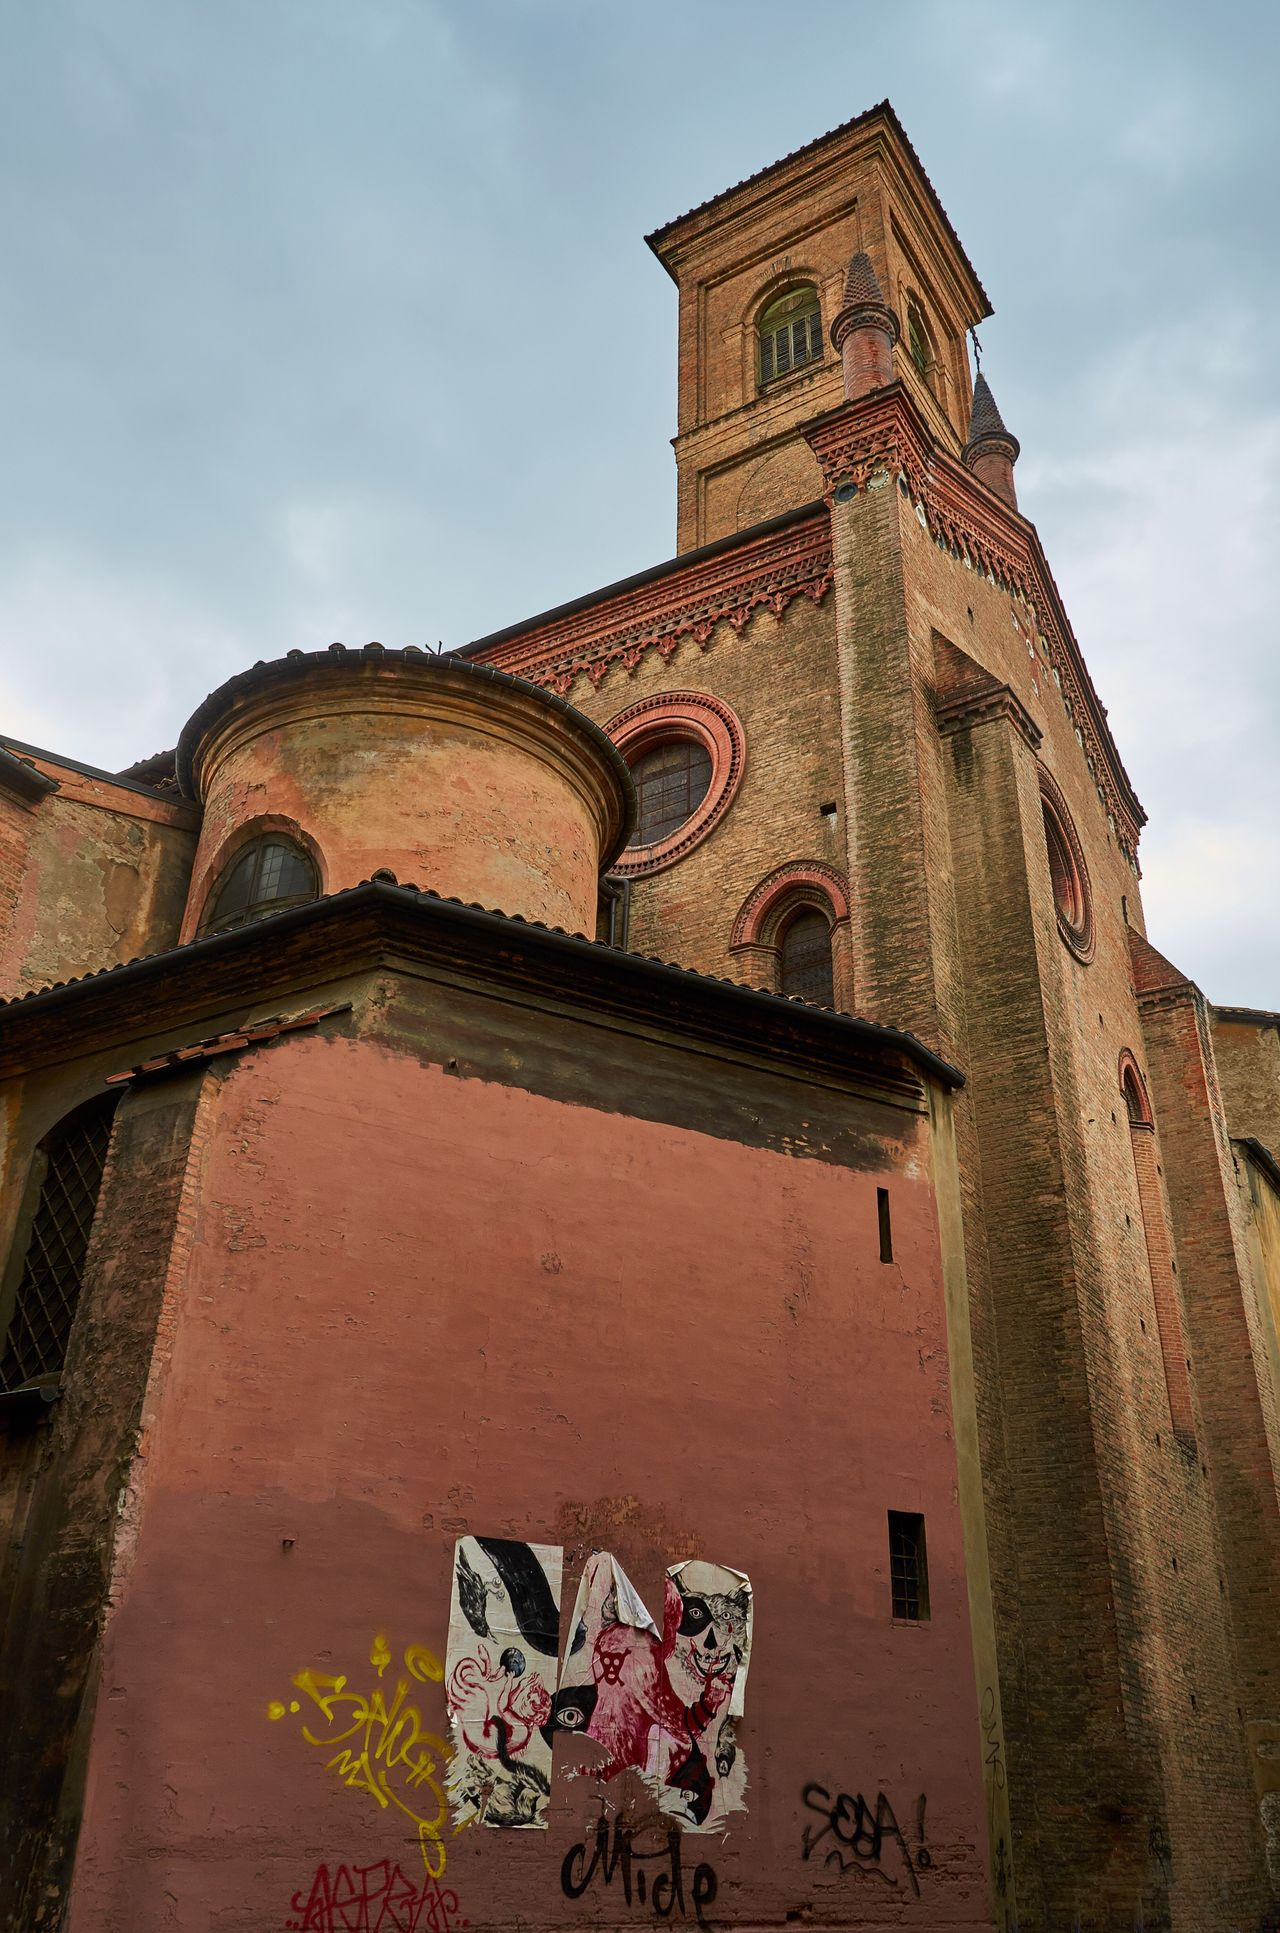 Bologna, Italy Bologna Italy Textures And Surfaces Cloud - Sky Urban Building Building Exterior Architecture Historic Historical Building Lookingup Built Structure Low Angle View No People Church Bell Tower Cupola Graffiti Street Art Place Of Worship Religion Round Window Brick